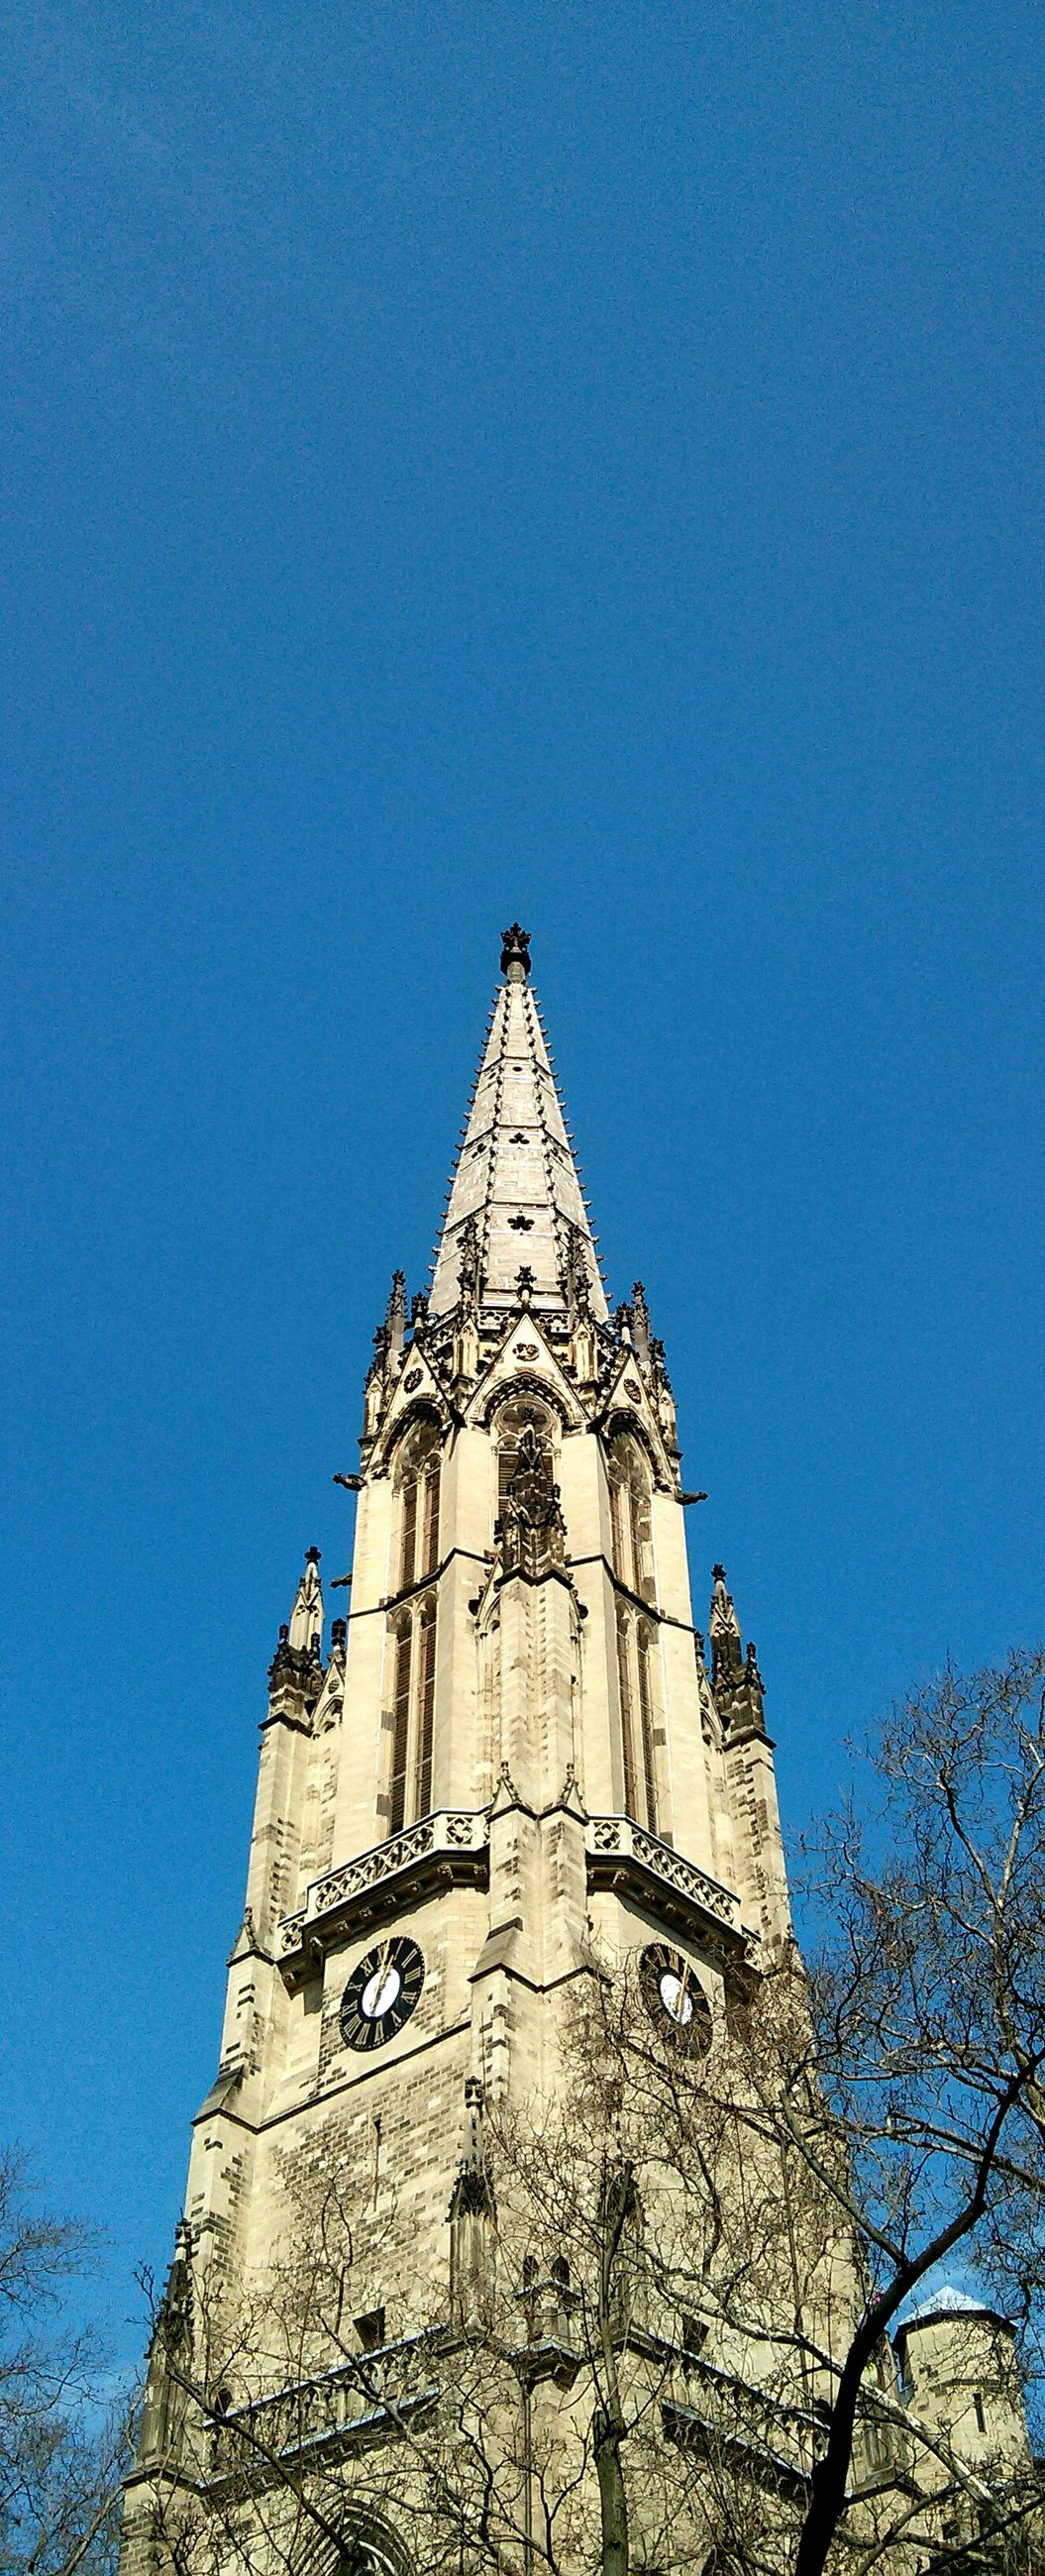 clear sky, architecture, building exterior, built structure, low angle view, copy space, blue, tower, religion, place of worship, high section, history, church, spirituality, no people, outdoors, day, clock tower, sunlight